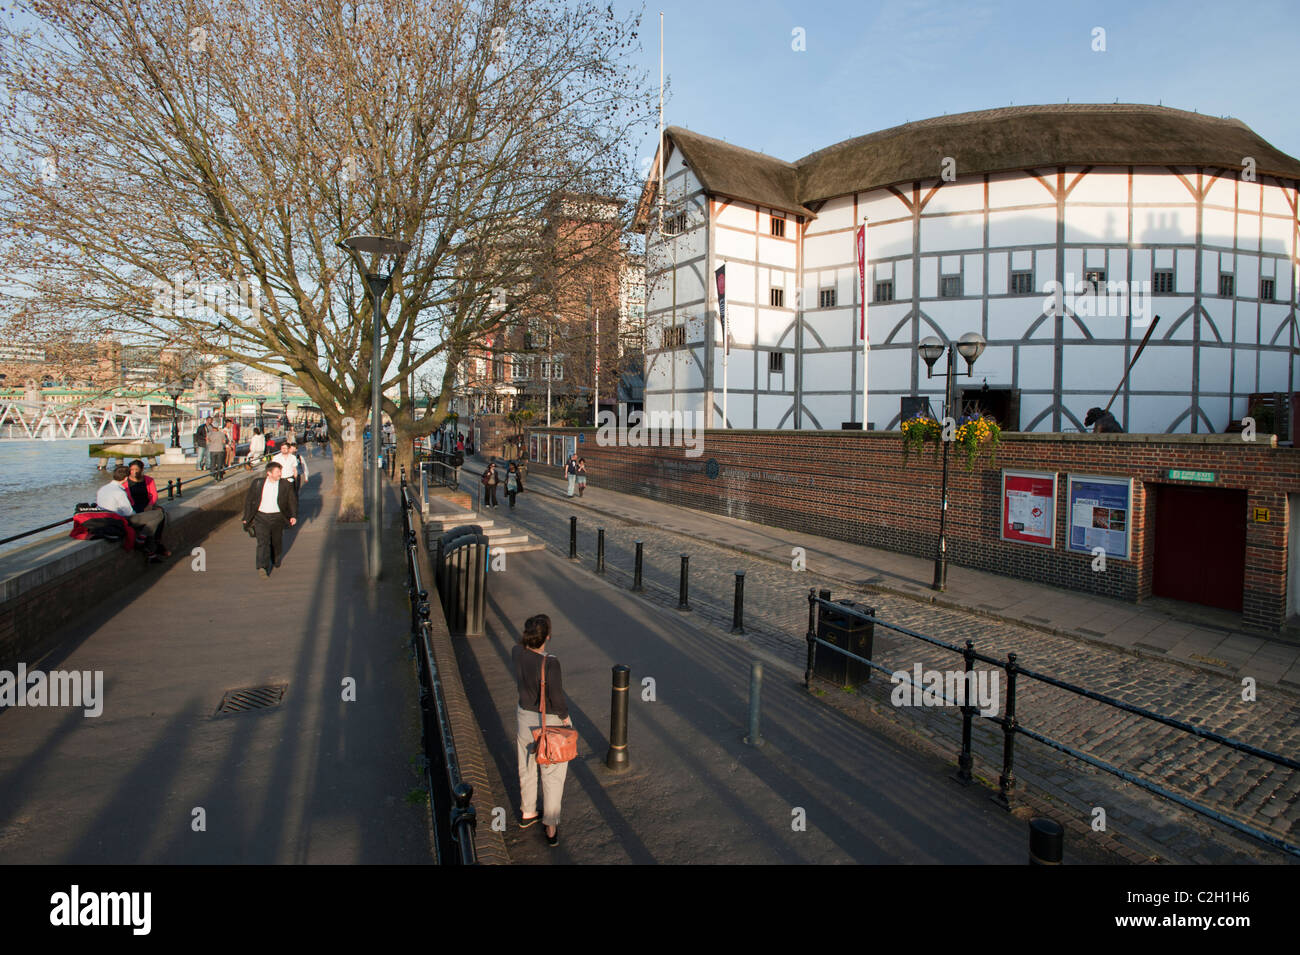 The Globe Theatre on the south bank of the River Thames in London, England, UK. - Stock Image